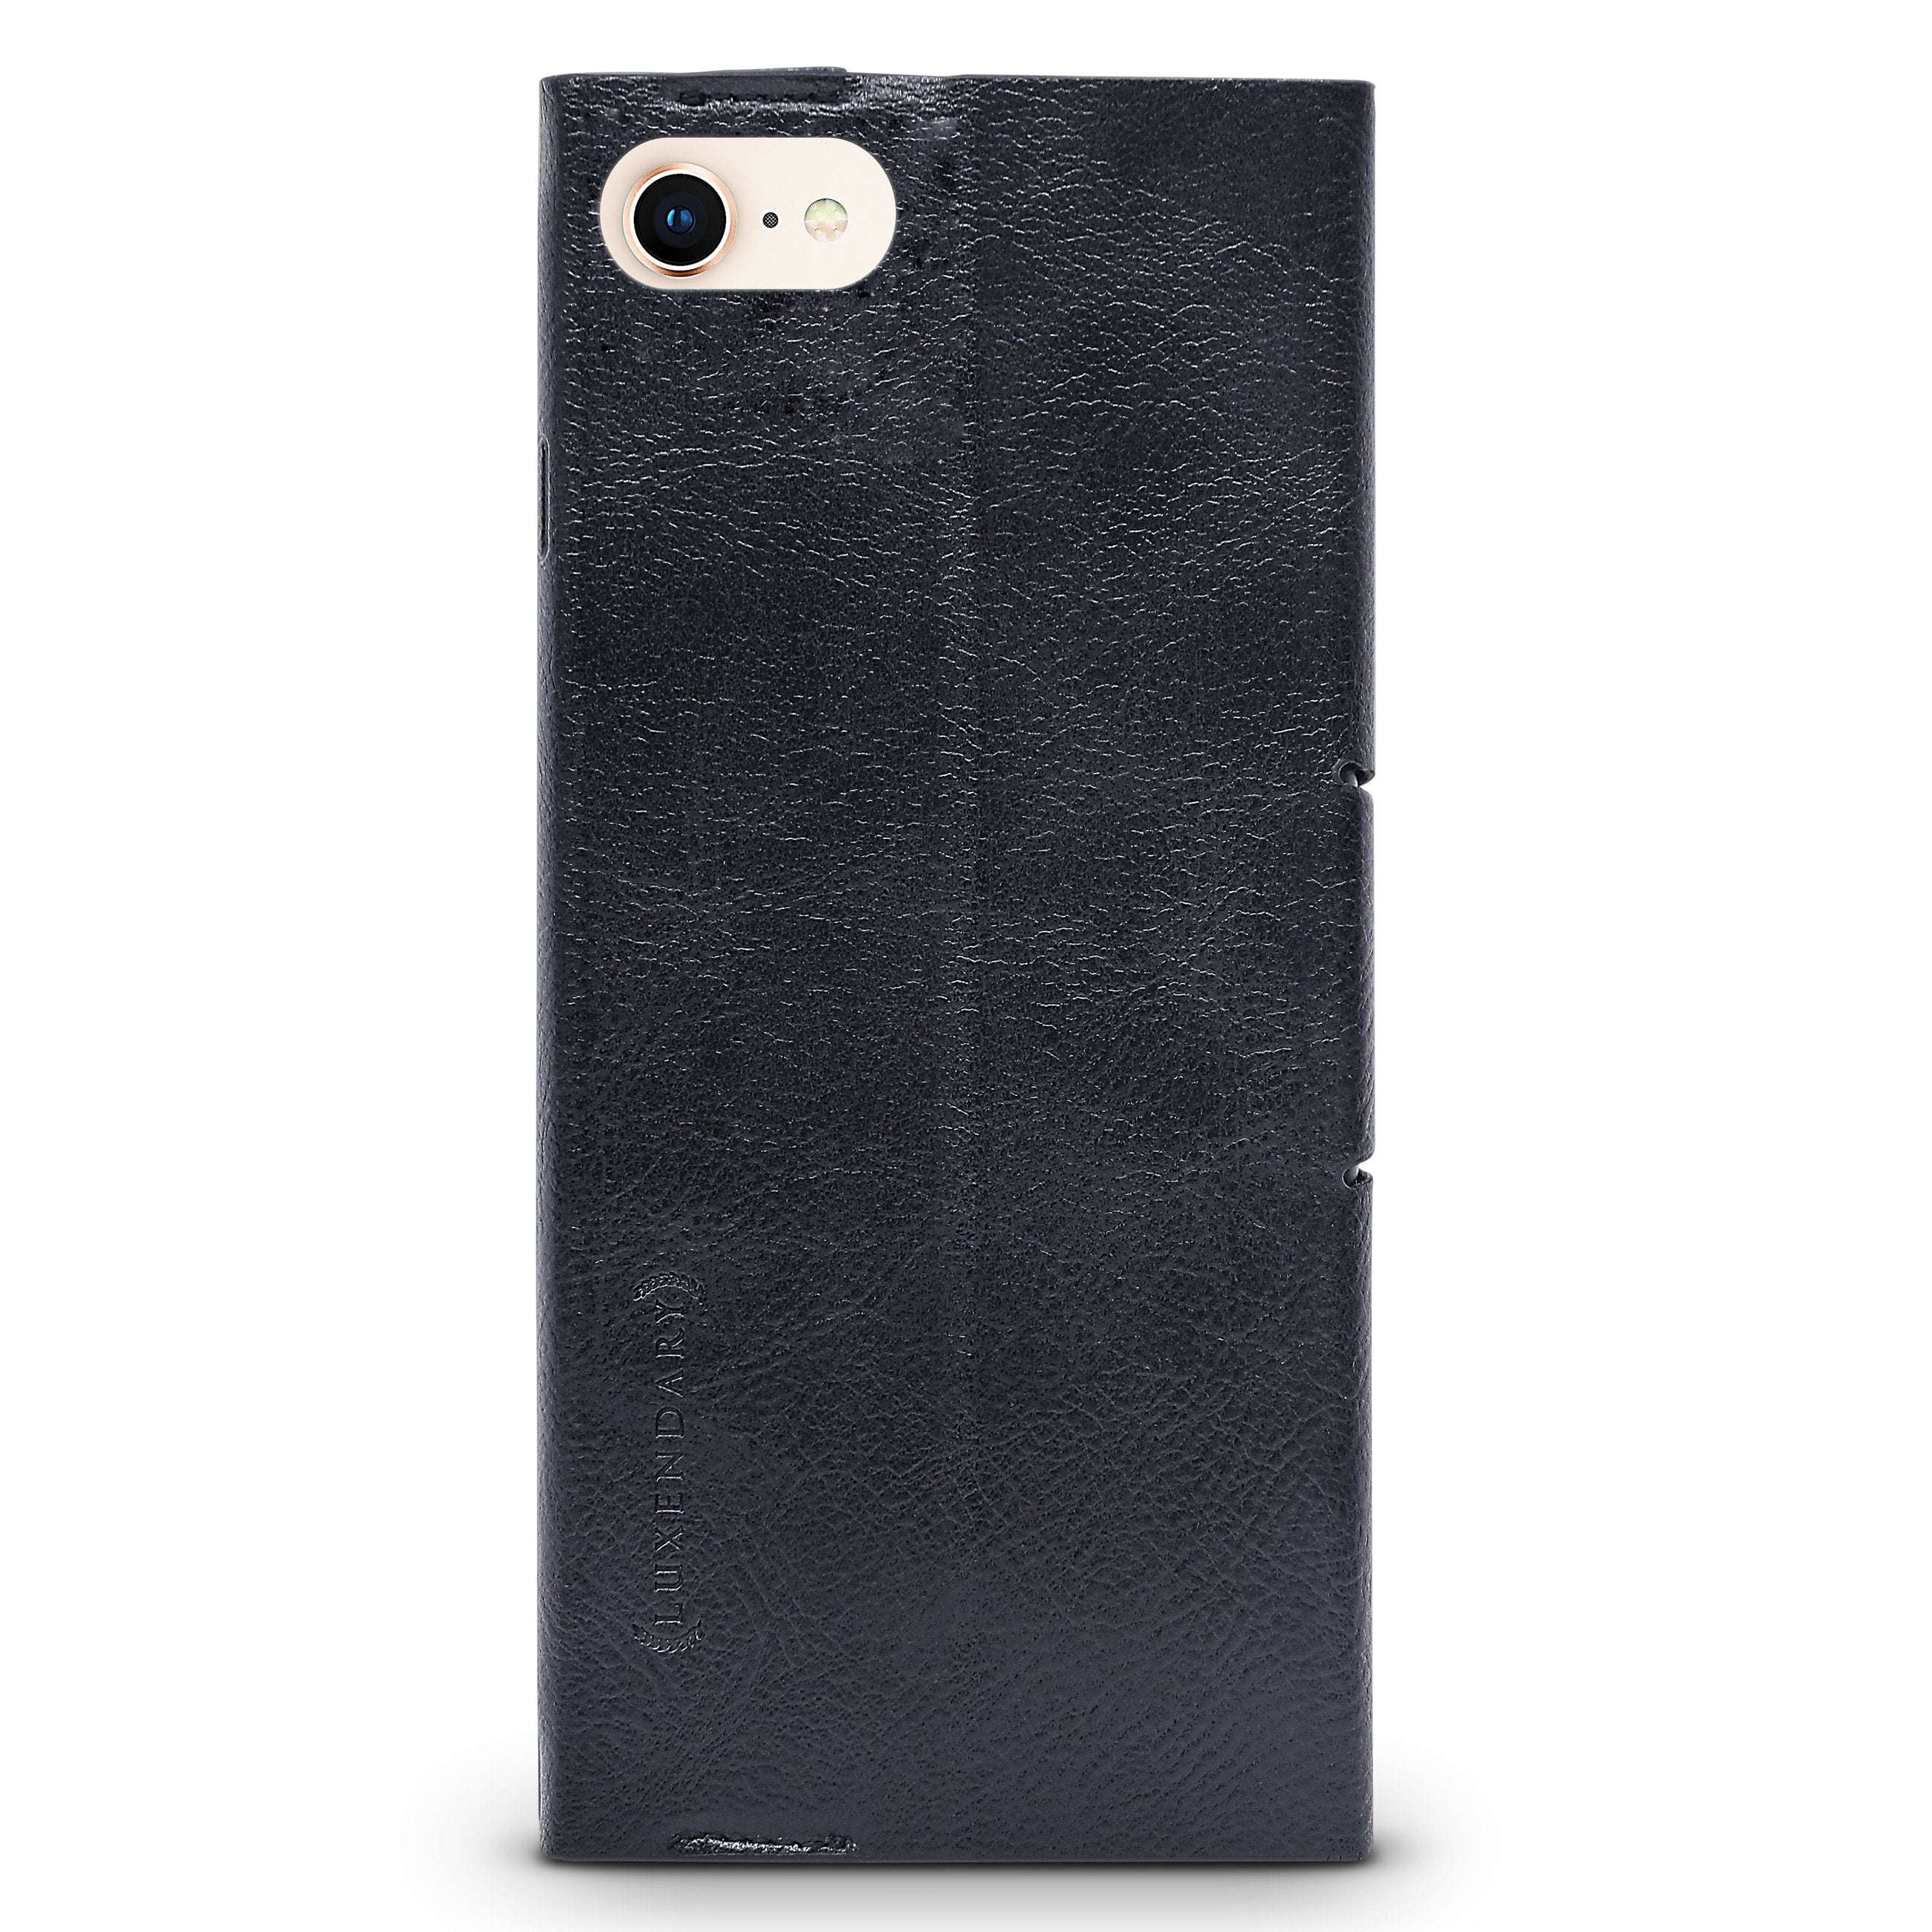 Industrial Skyline | Leather Series case for iPhone 8/7/6/6s in Hickory Black